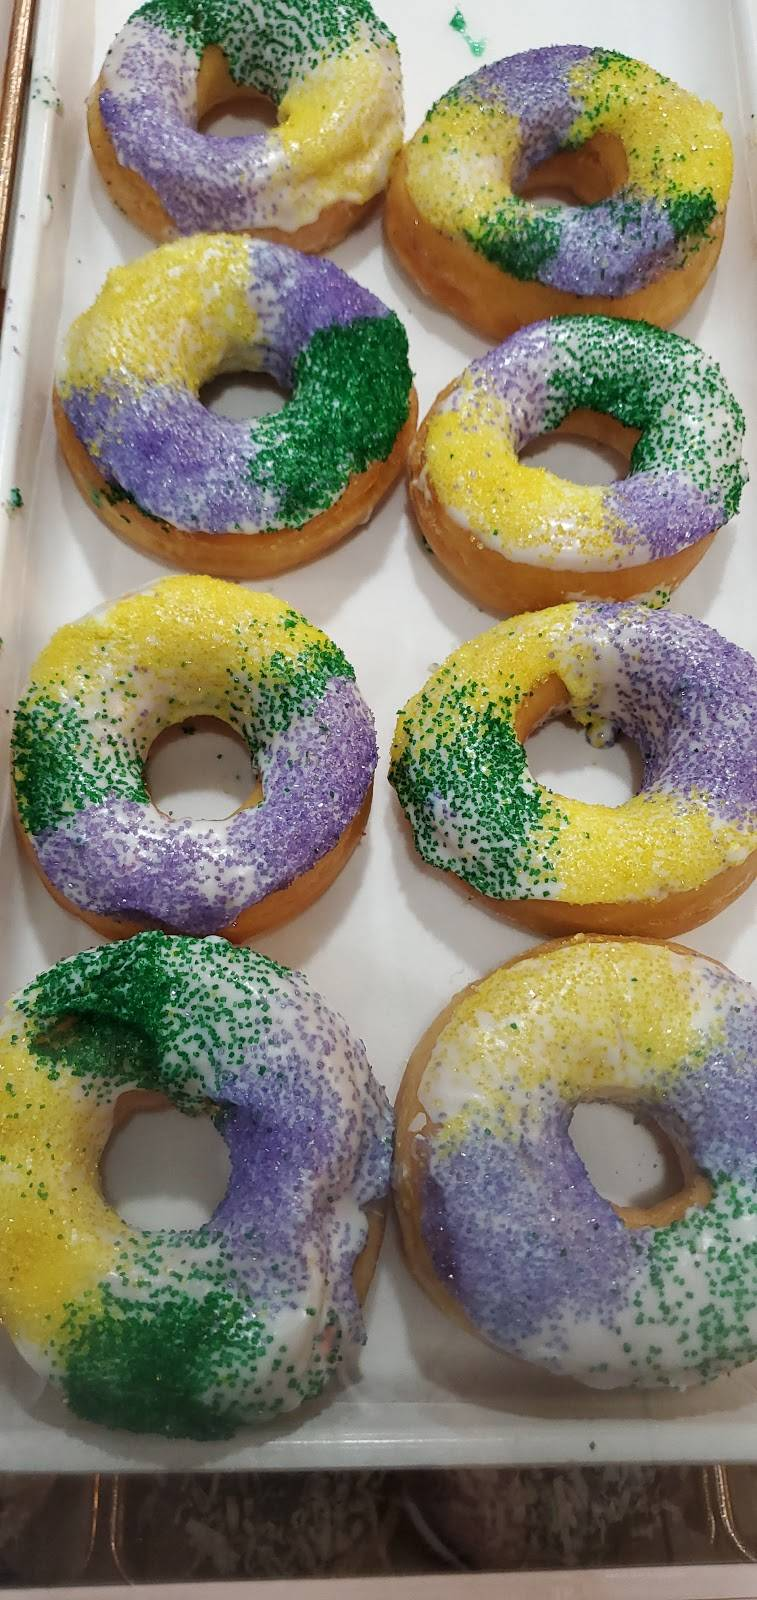 Citylicious Donuts and Cafe | restaurant | 143 Belle Terre Blvd, Laplace, LA 70068, USA | 9852248355 OR +1 985-224-8355